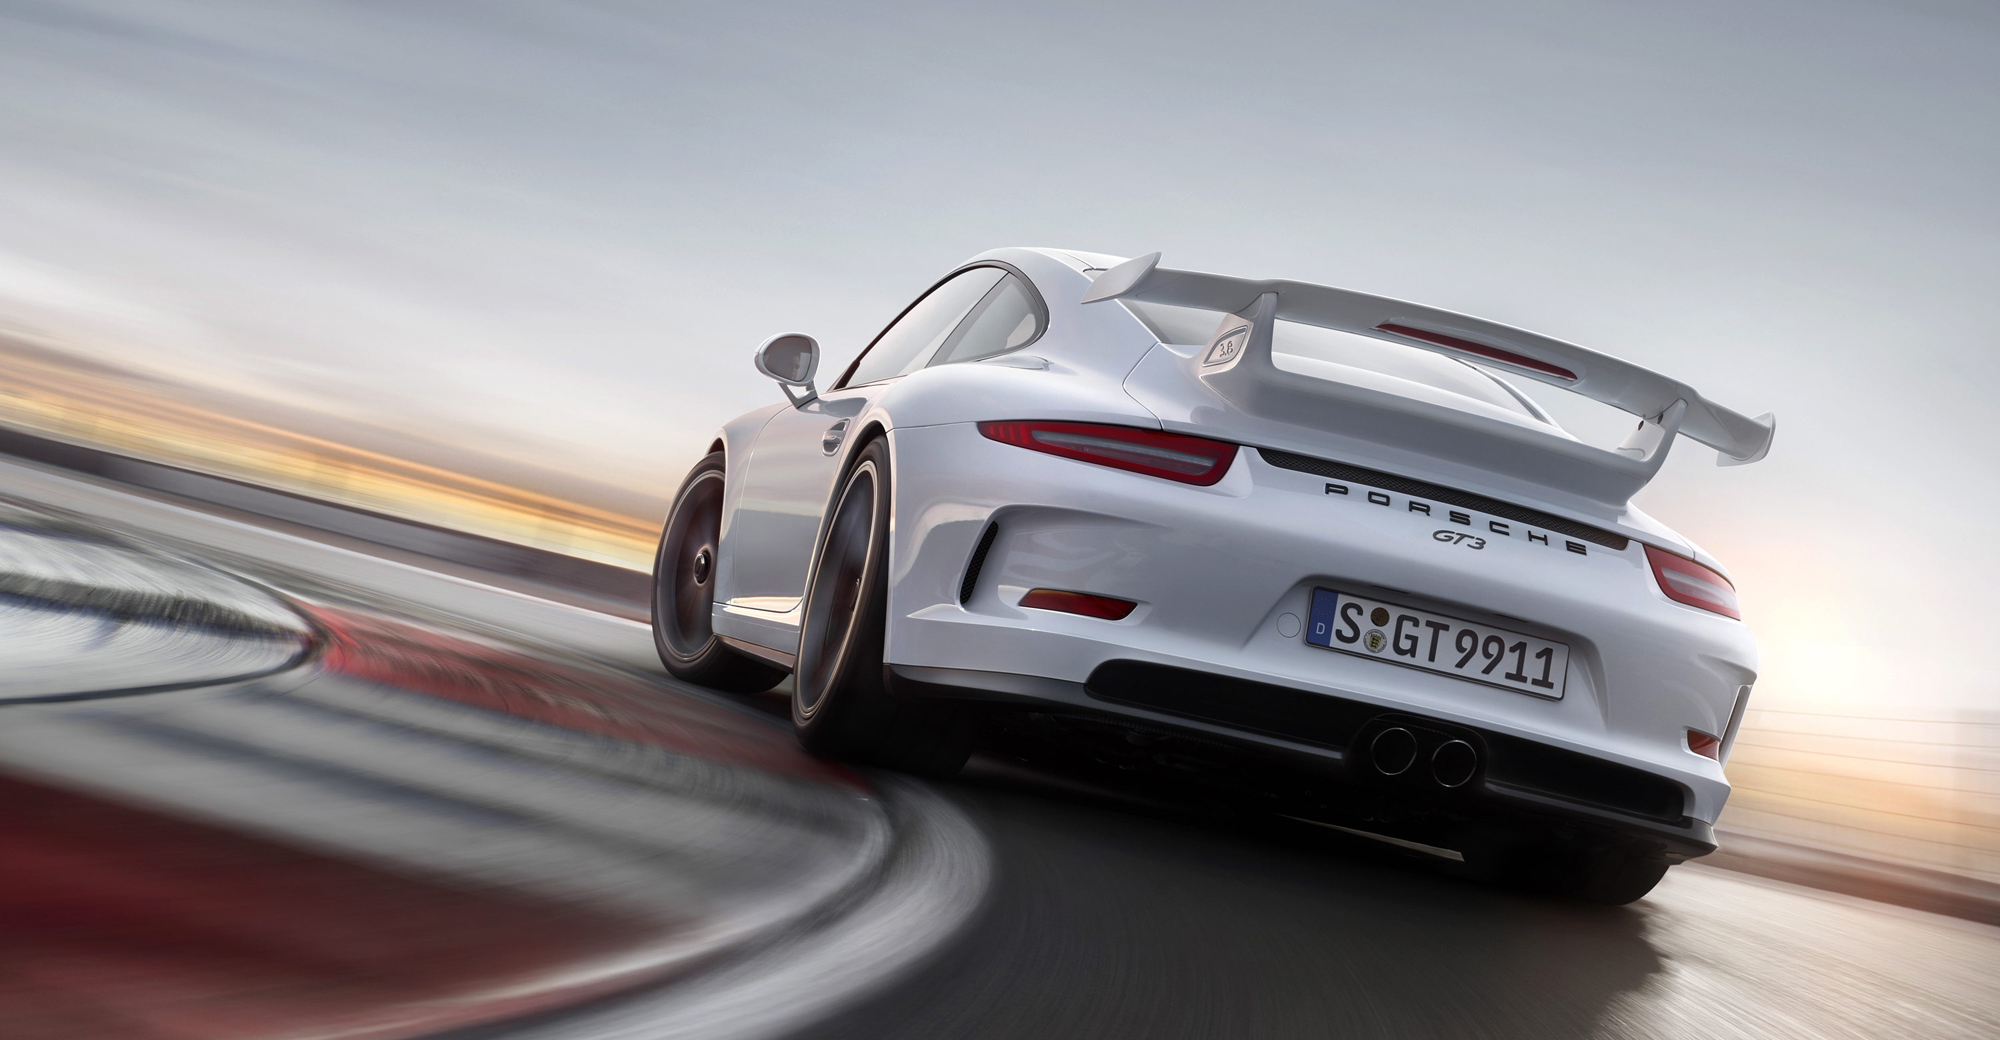 Porsche 911 Wallpapers Wallpapersafari